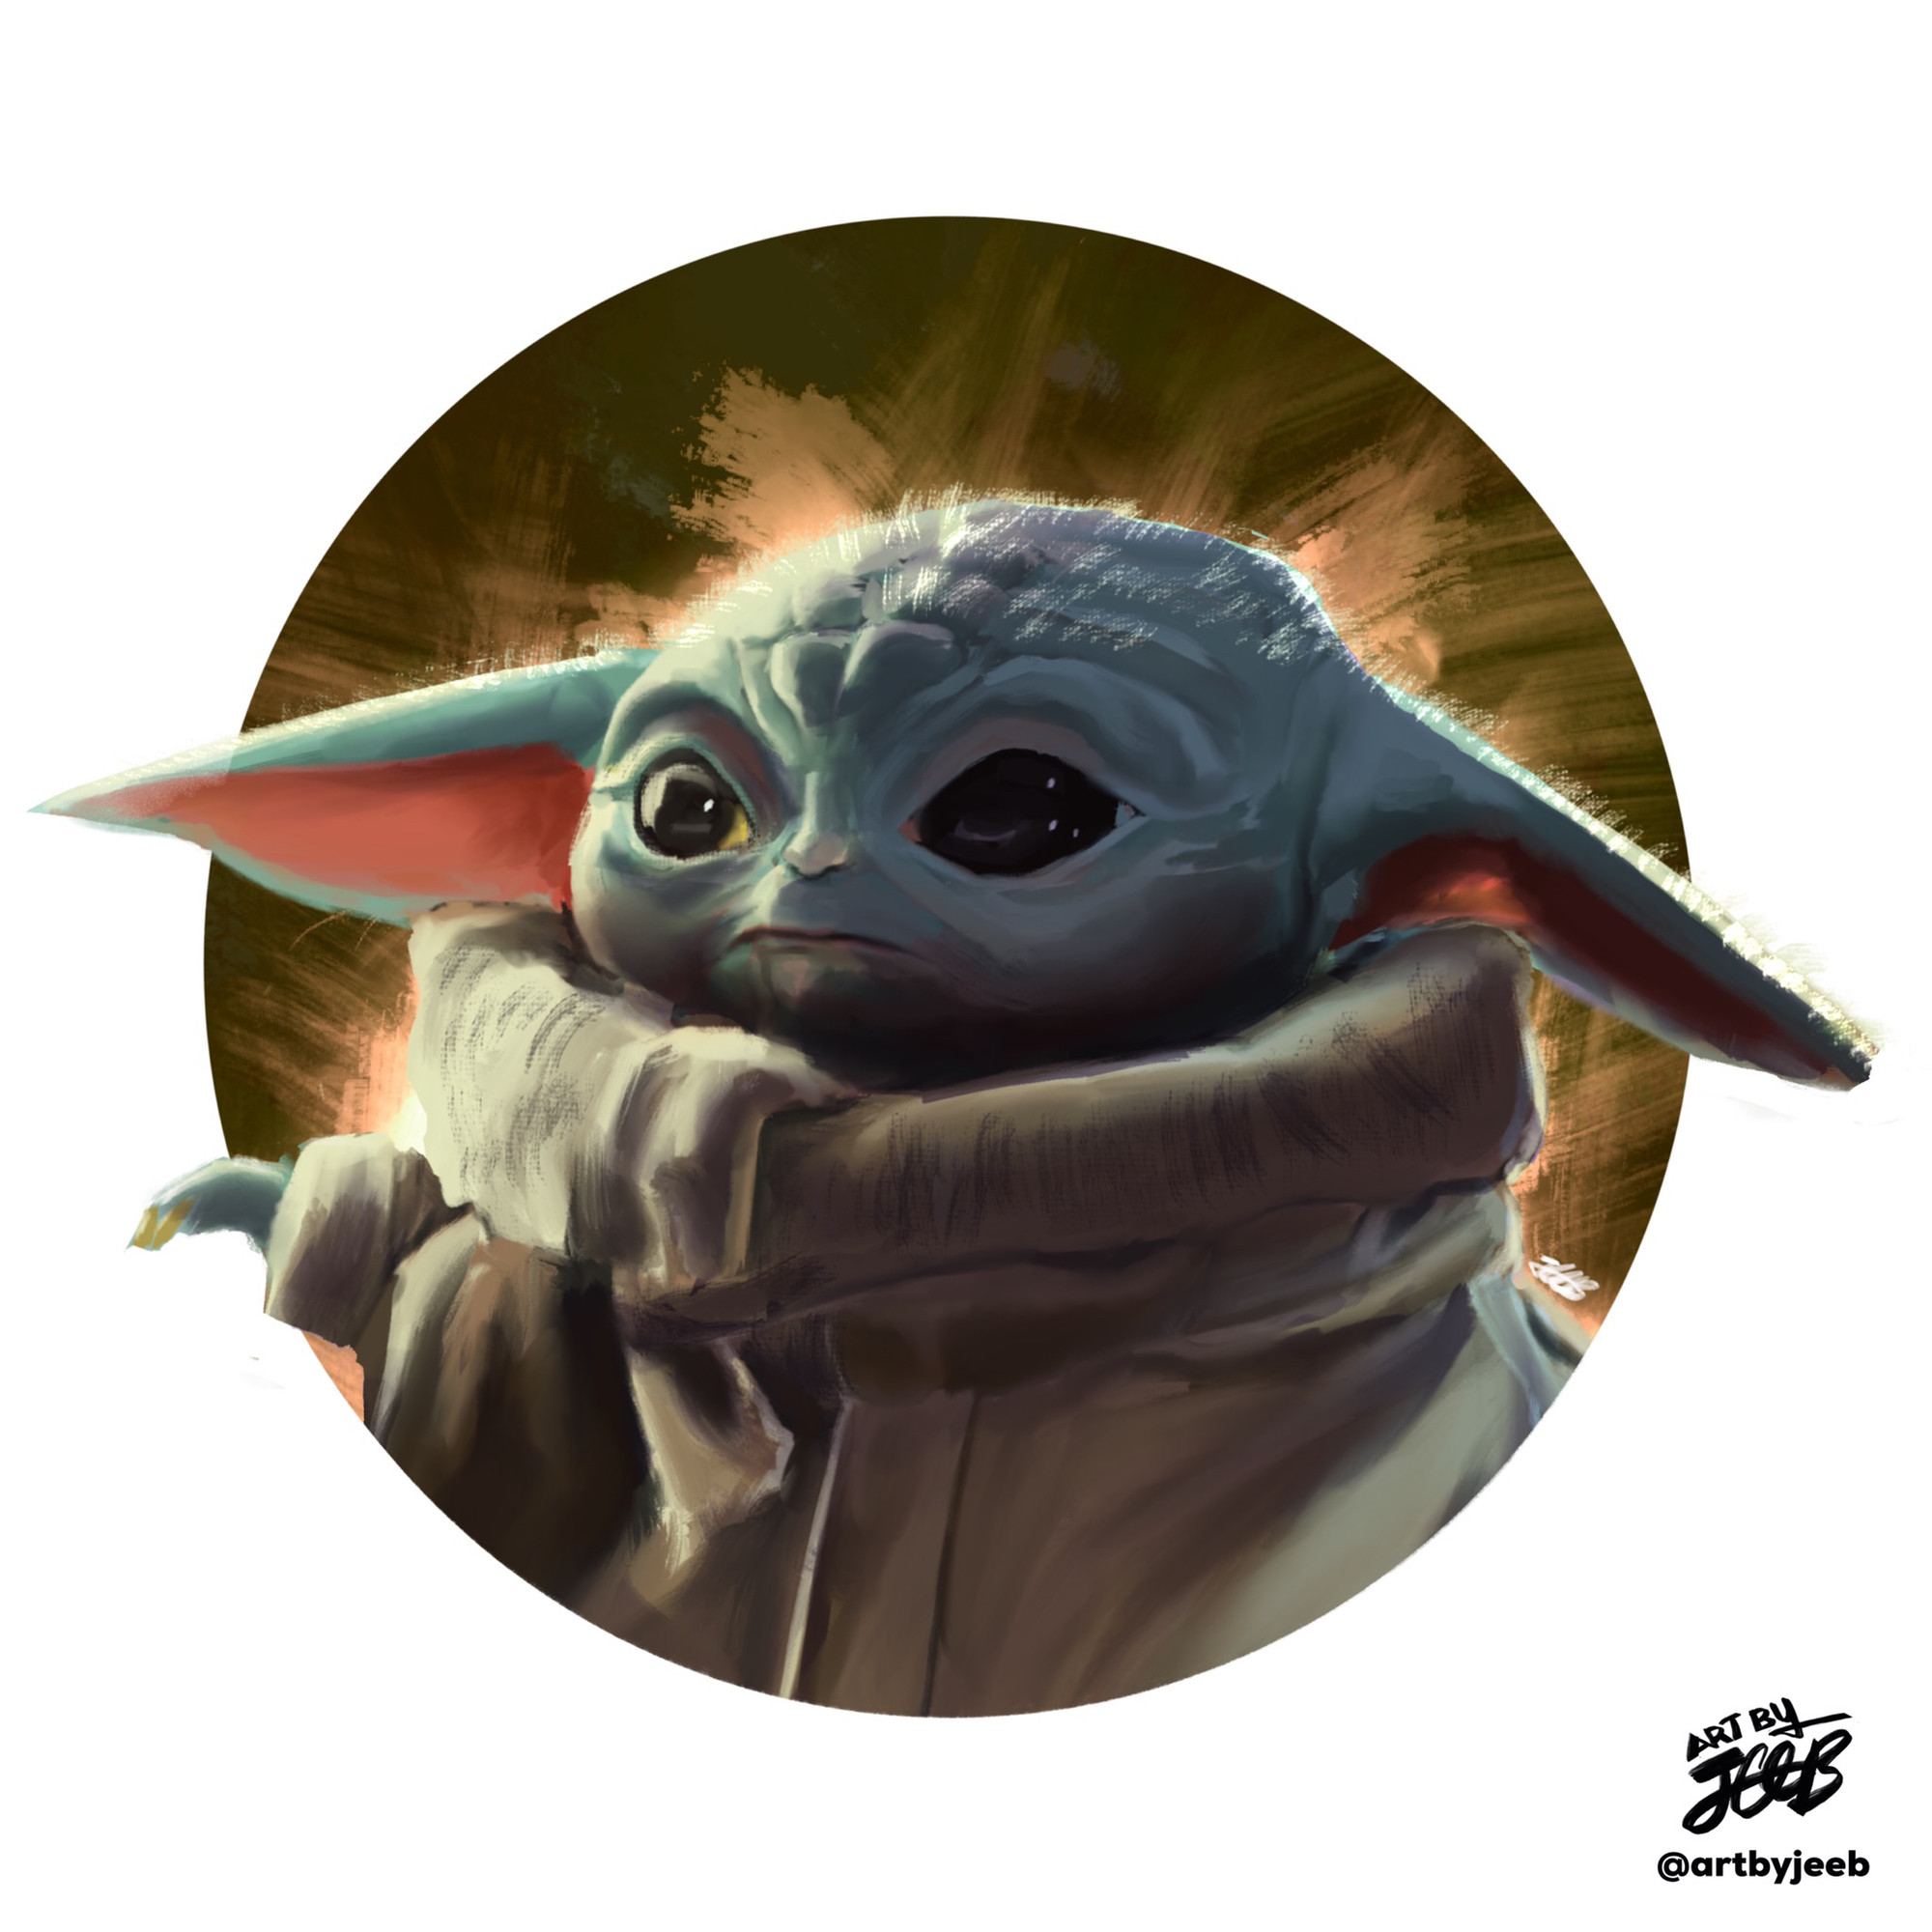 Digital painting of Baby Yoda